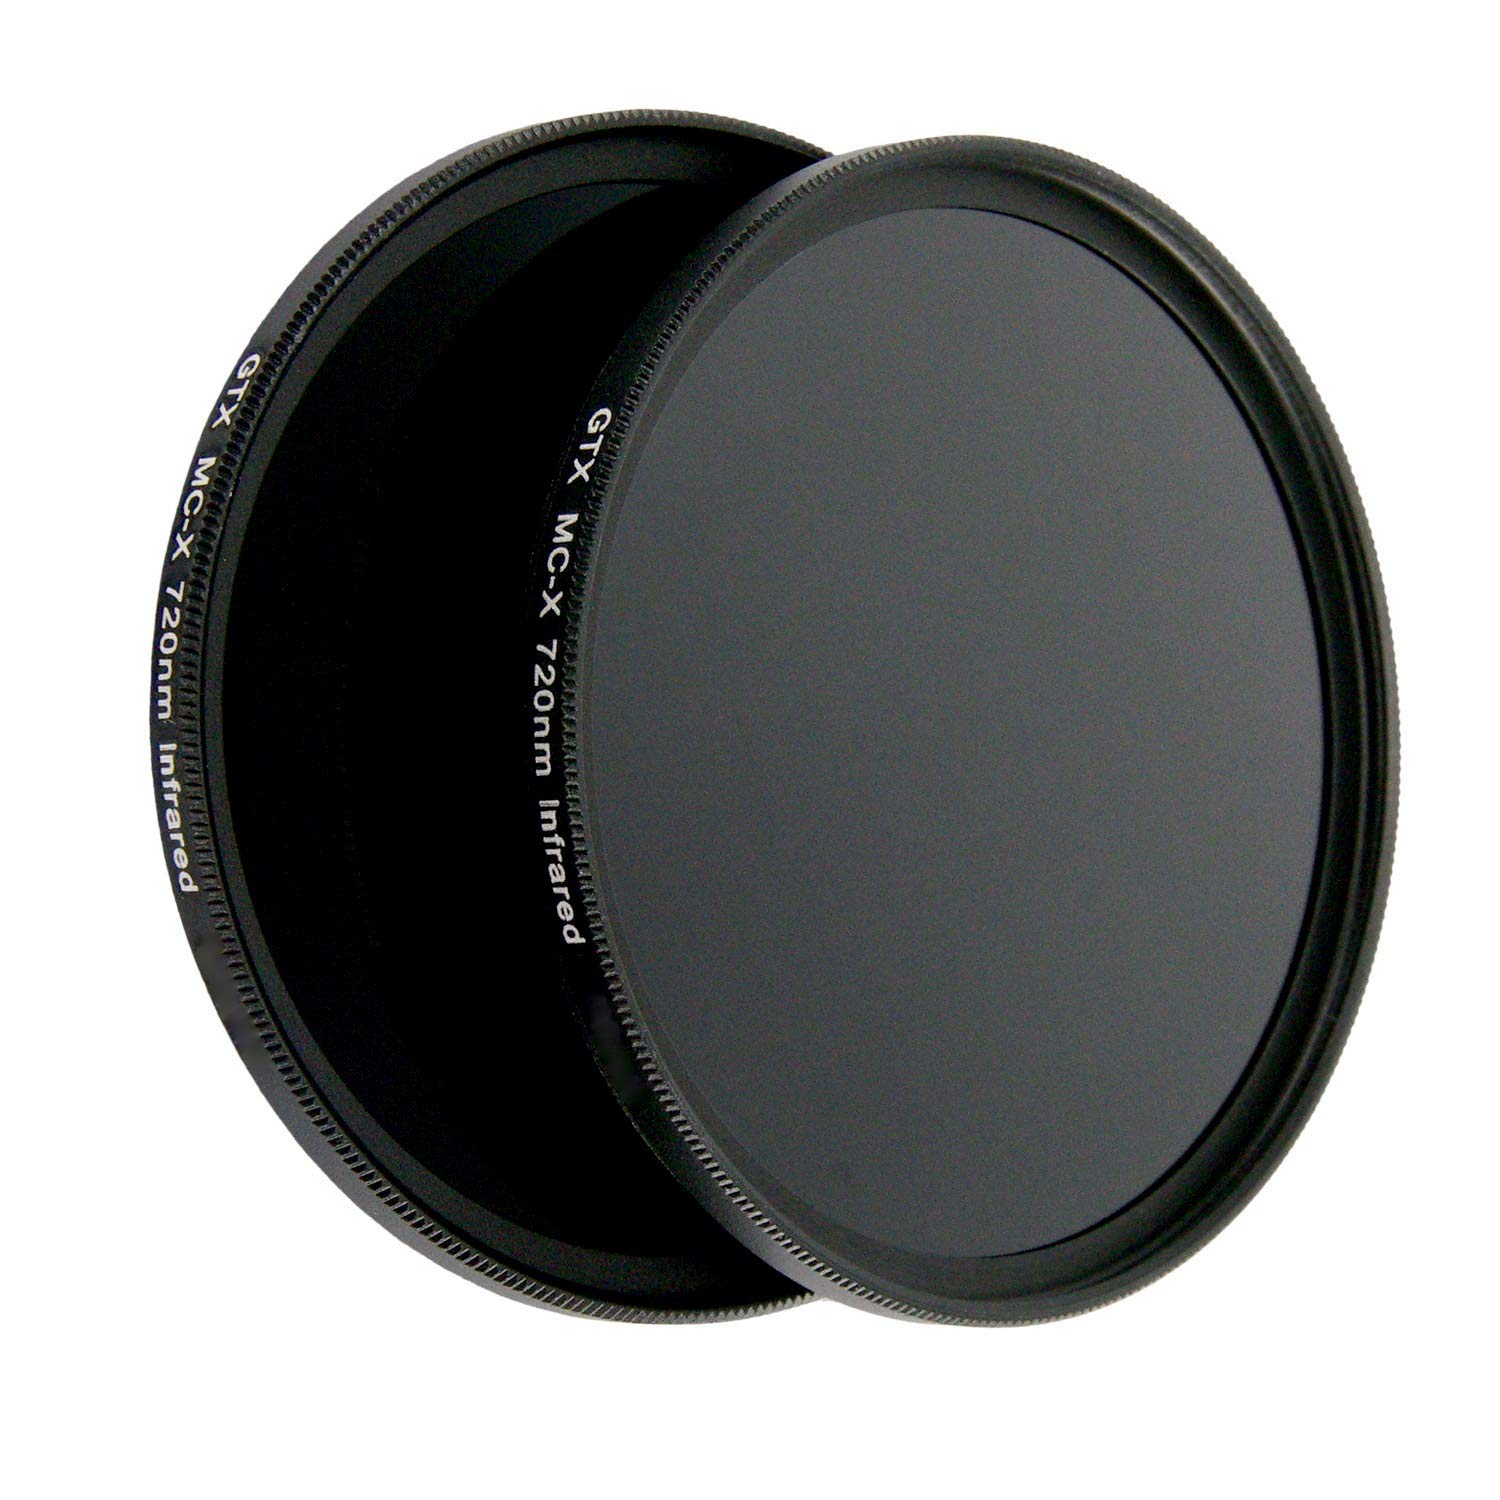 77mm X-Series IR720 IR 720nm Infrared Filter for Camera Lens Digital DSLR SLR by Sunset Foto